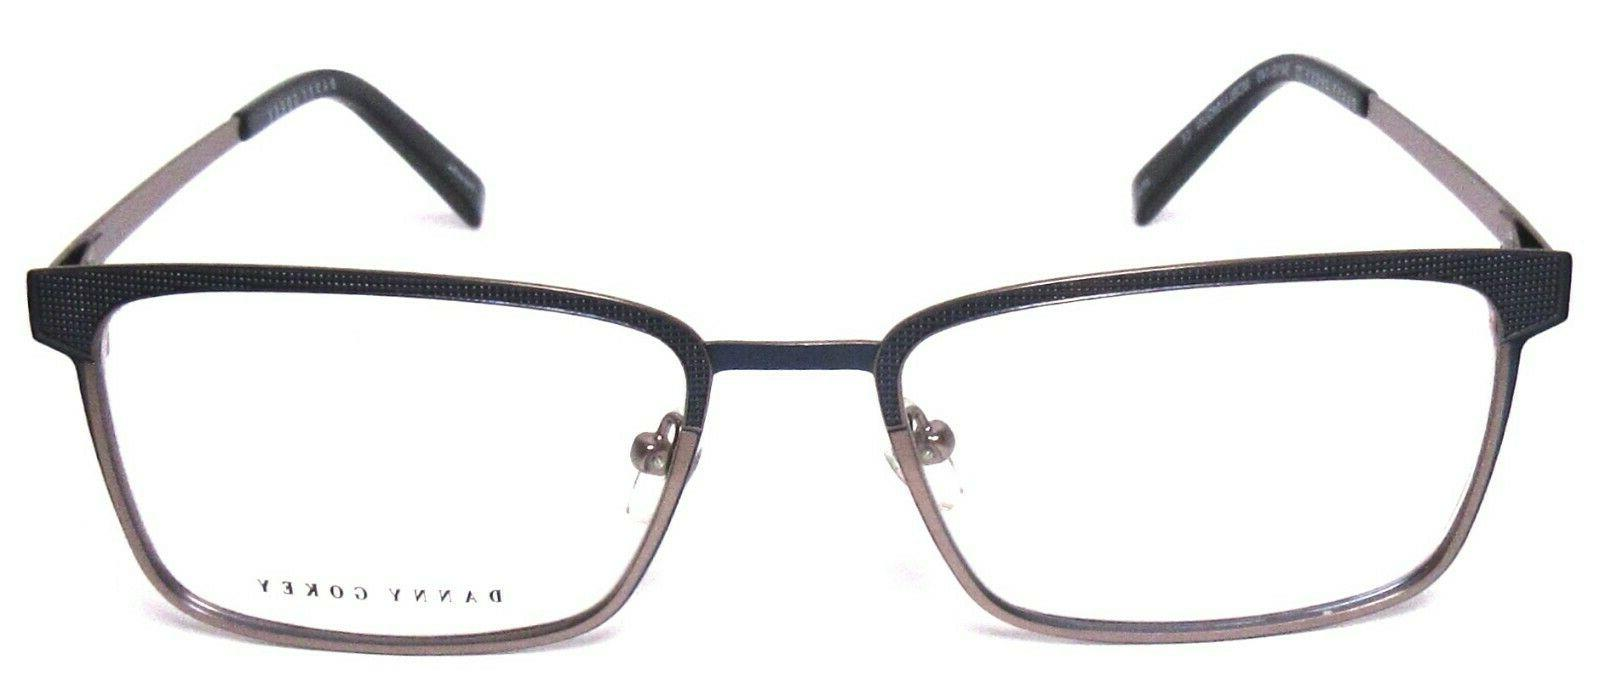 dg72 eyeglass glasses frames 54 18 140